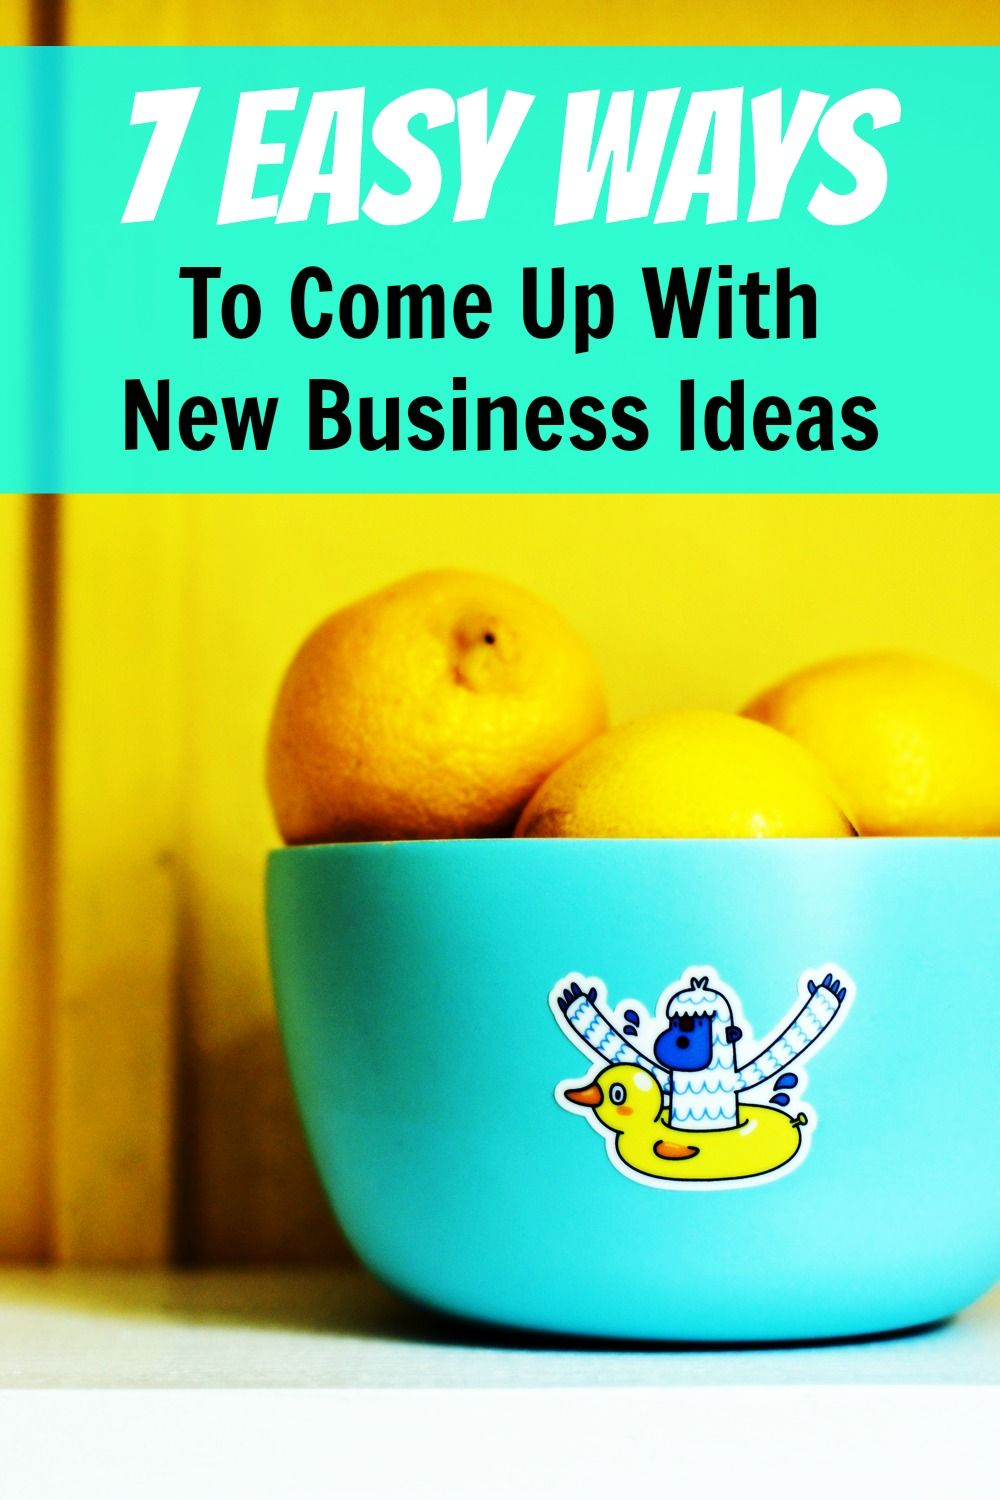 7 proven ways to come up with new business ideas - with real life